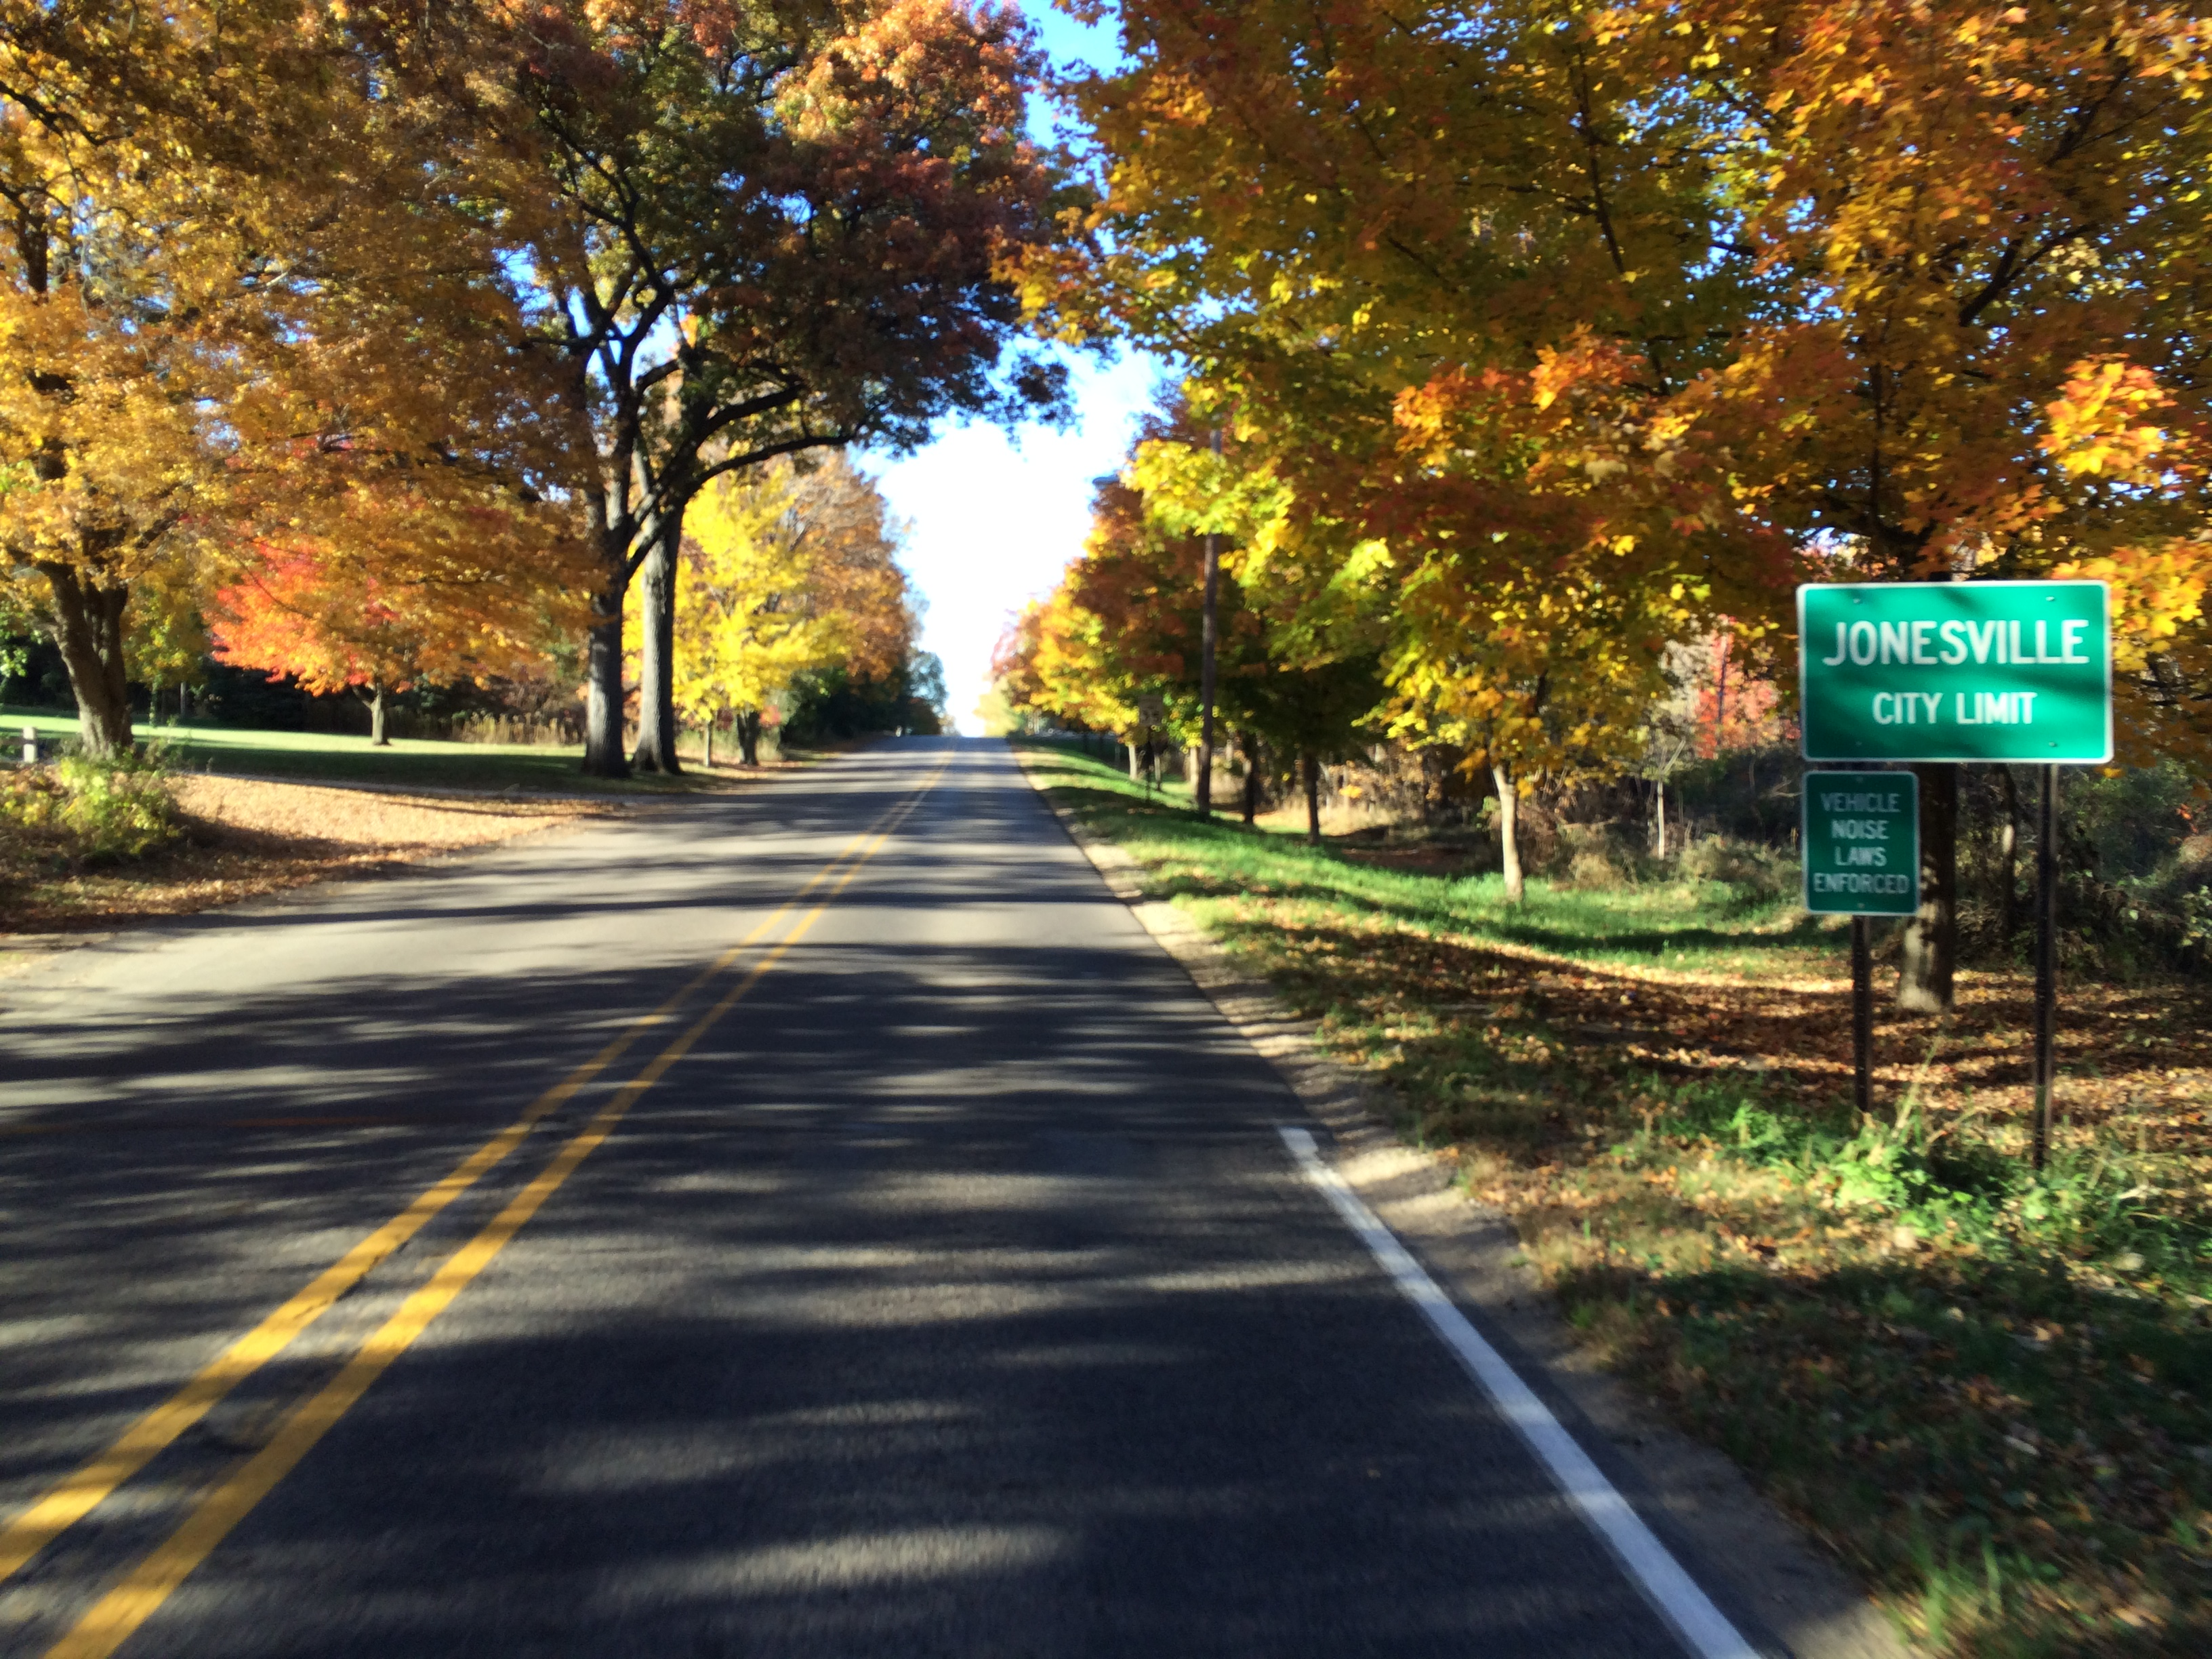 Blacktop road with yellow centerline surrounded by trees in brilliant fall colors of yellow and orange with a green Jonesville City Limit sign